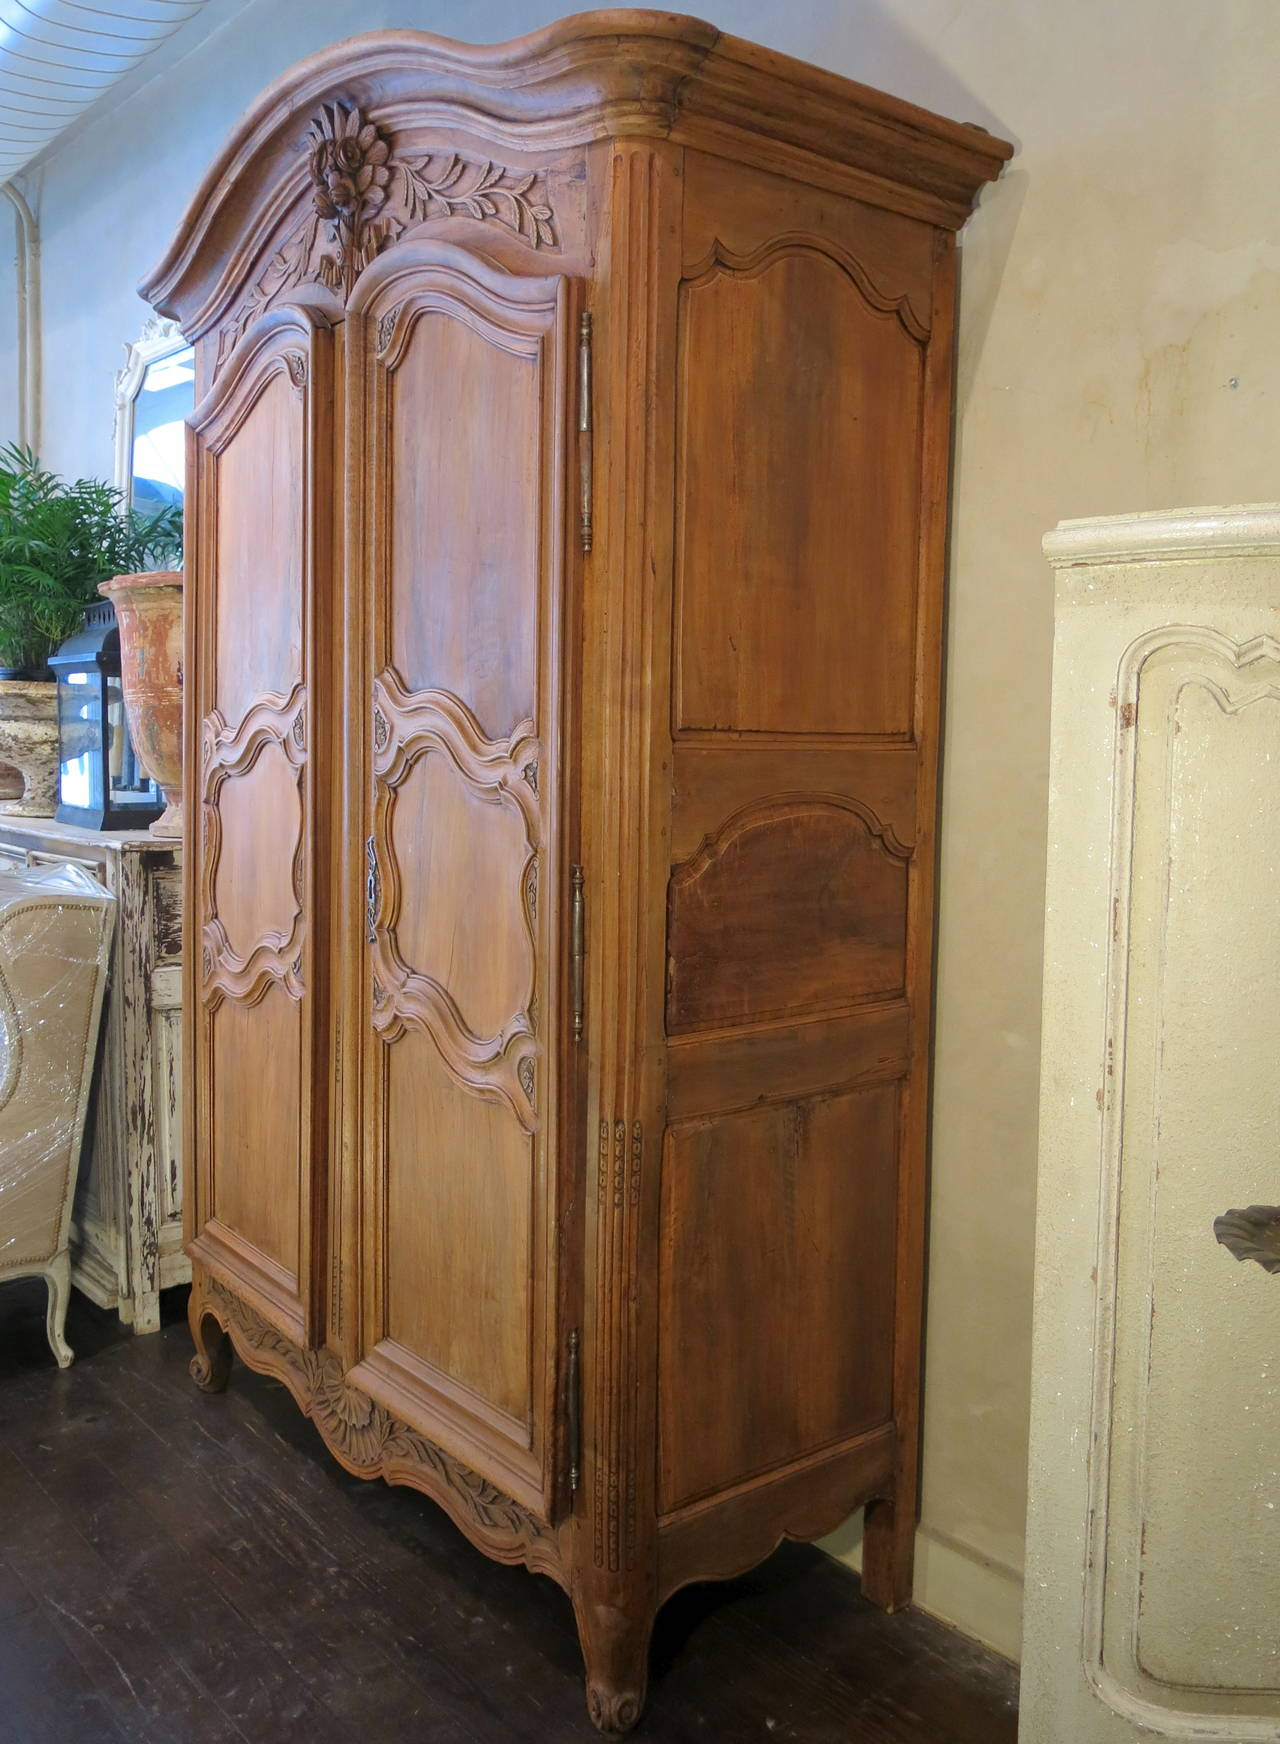 18th century period regence louis xv grand walnut armoire. Black Bedroom Furniture Sets. Home Design Ideas